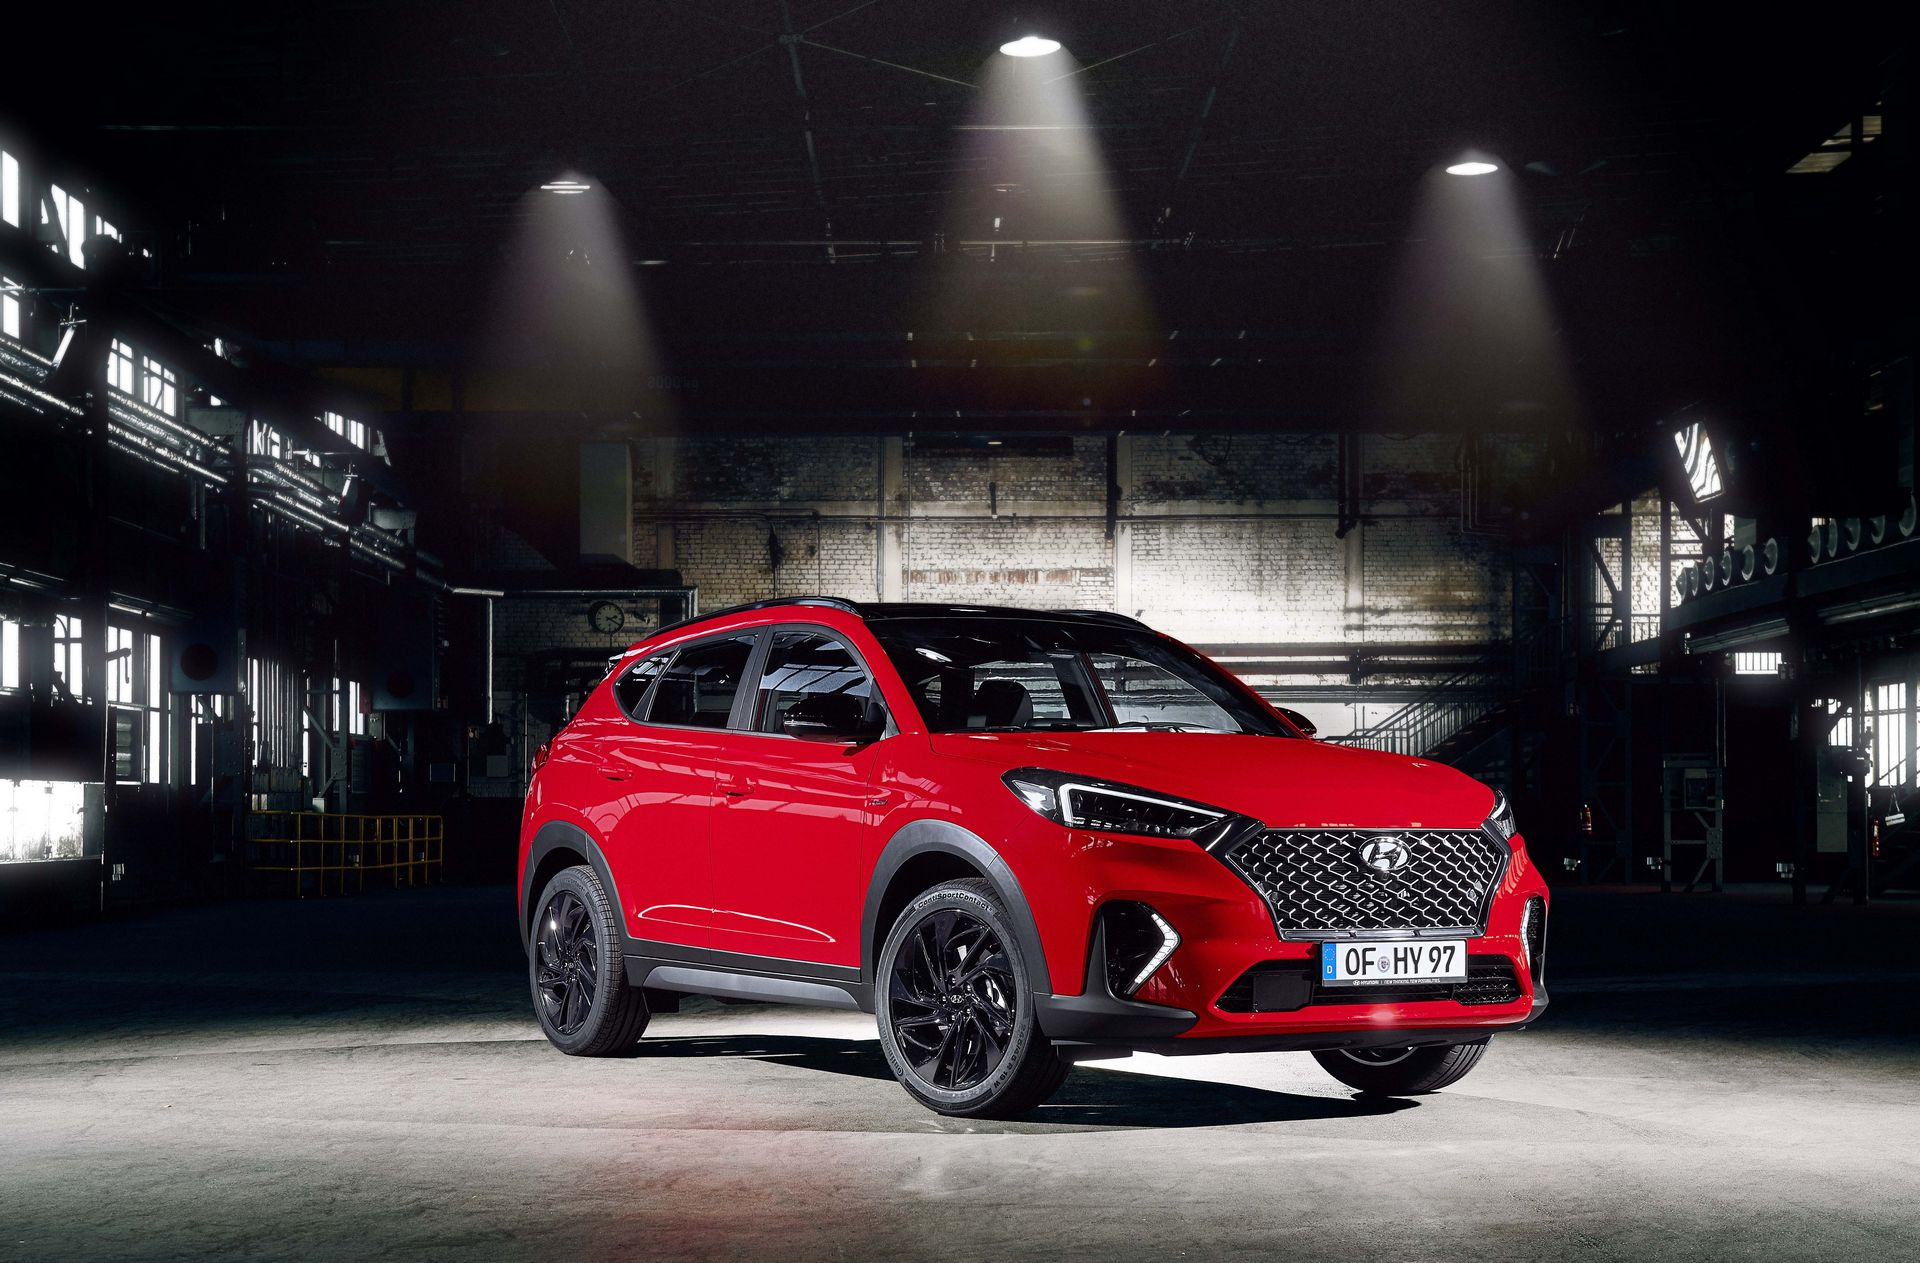 2020 Hyundai Tucson N Line Packs Up To 185 Ps Autoevolution